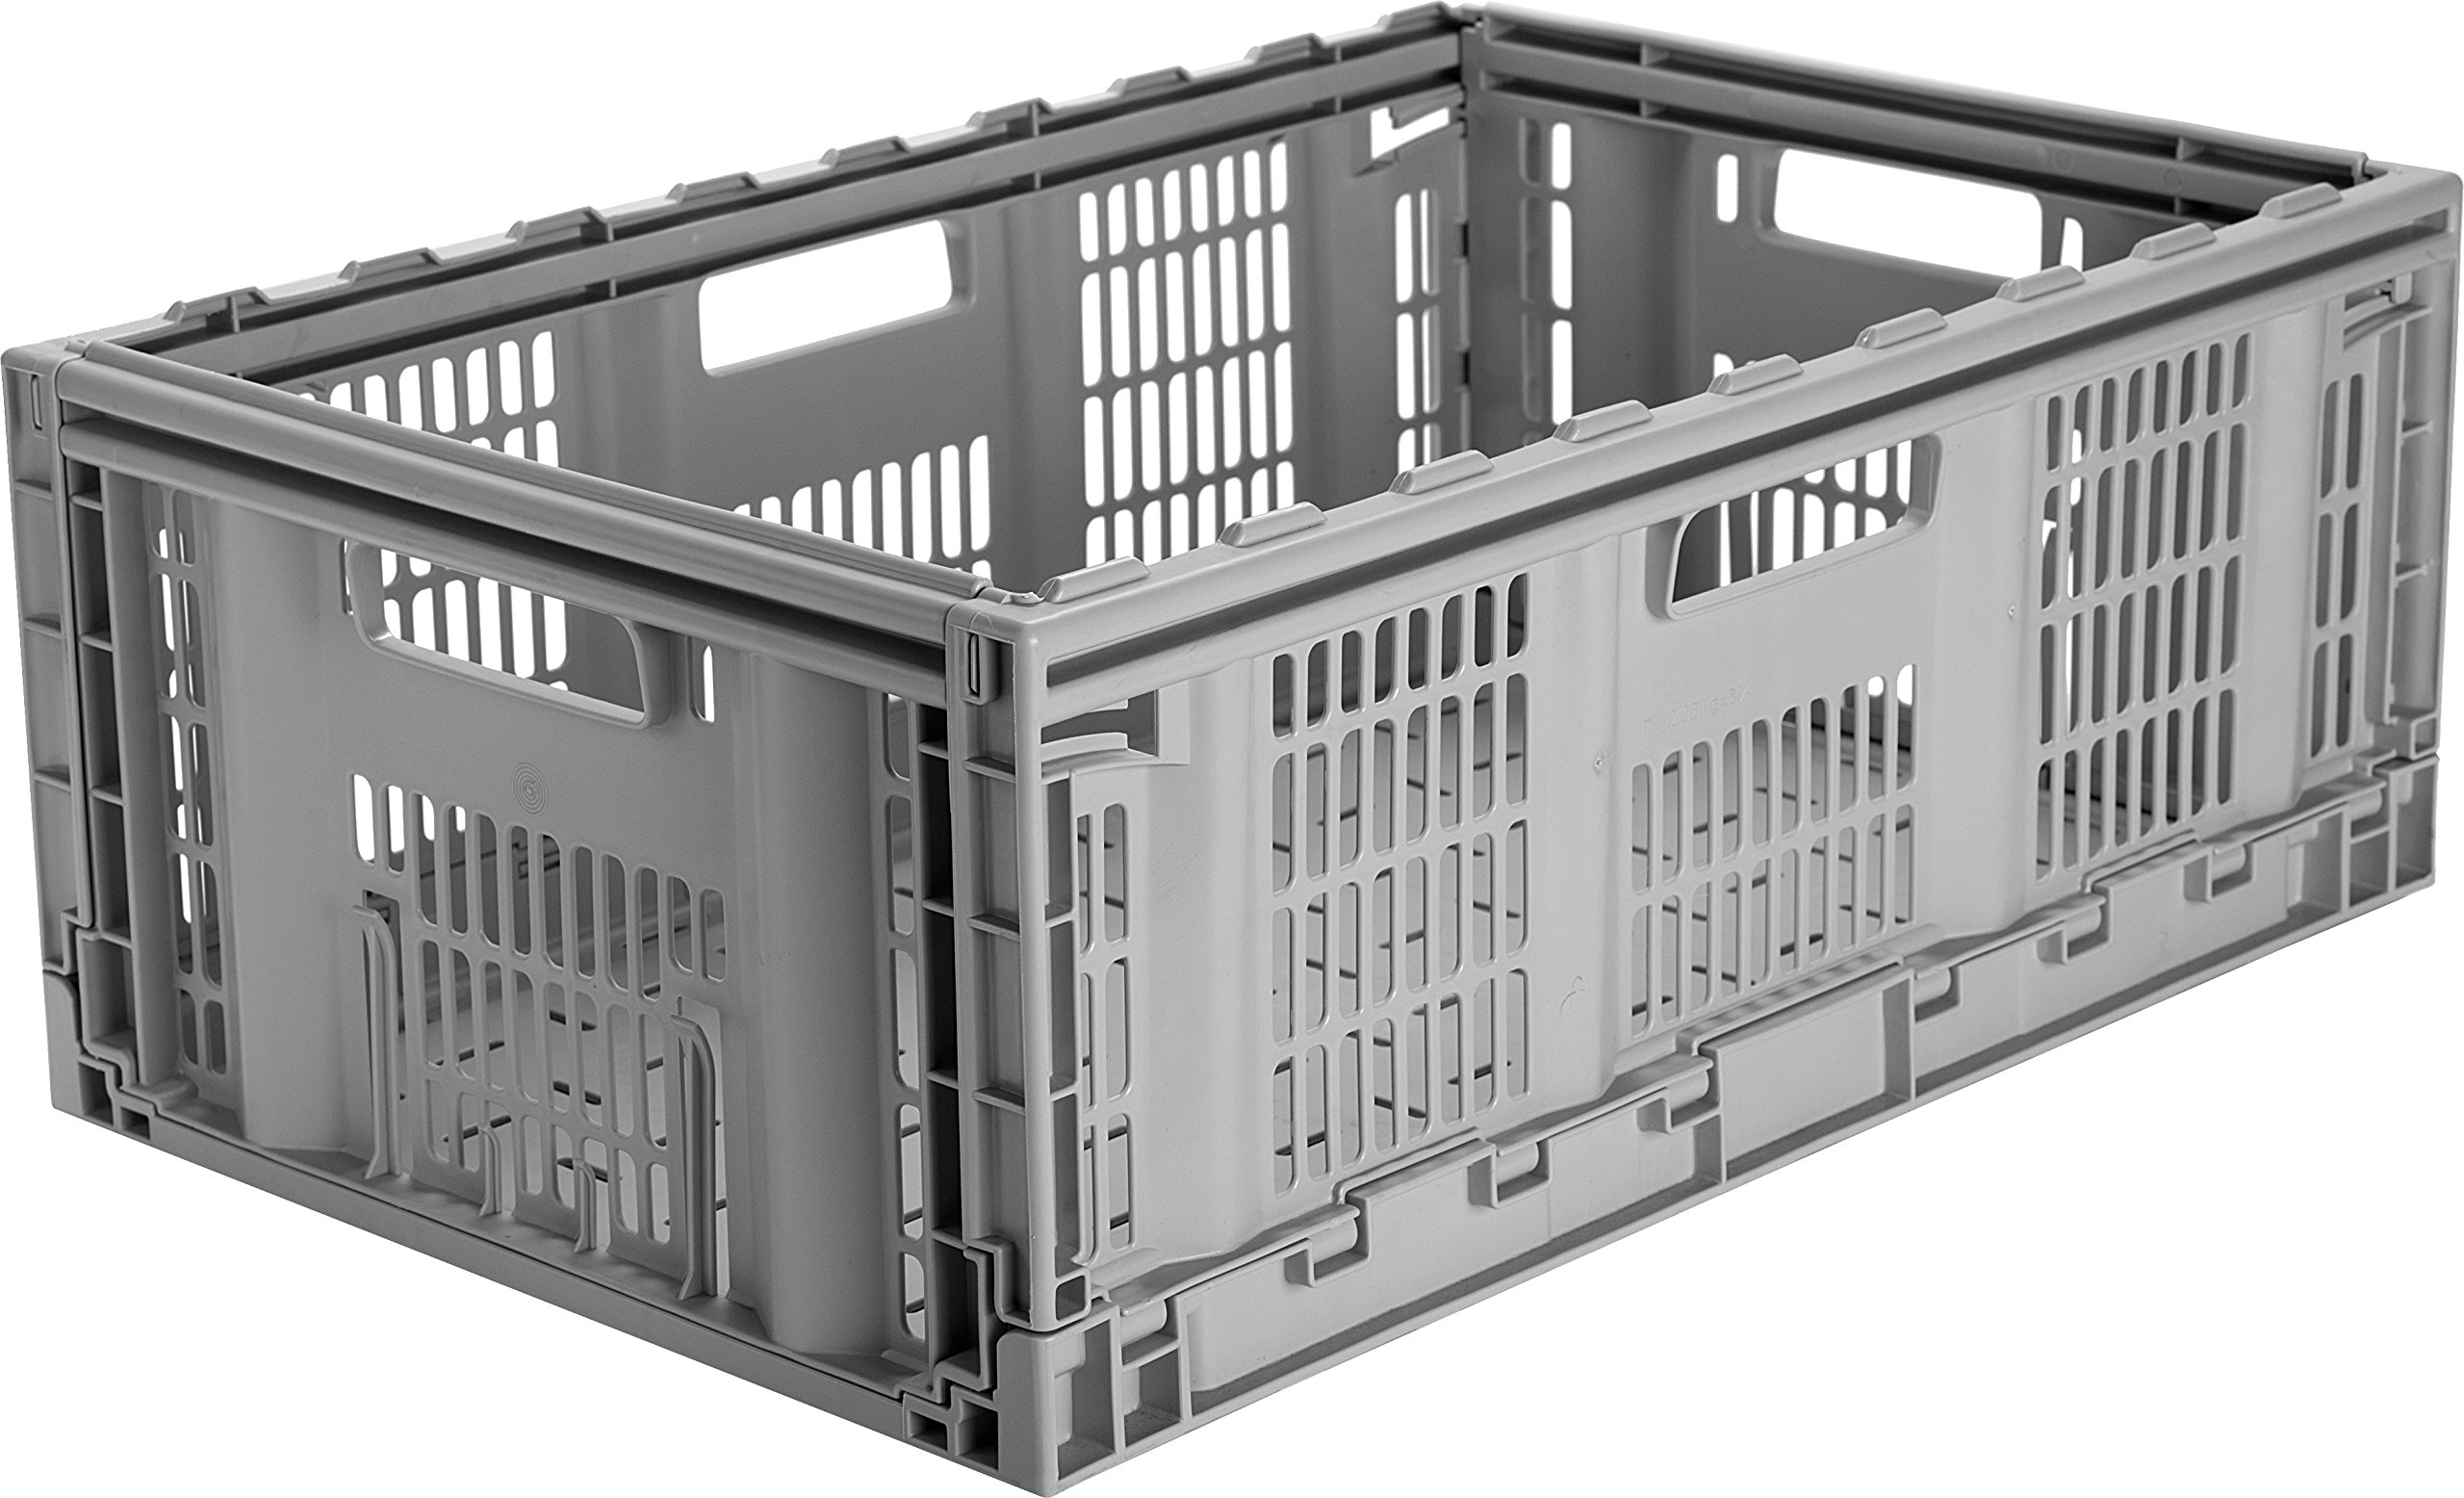 CleverMade CleverCrates Pro-Grade 46 Liter Collapsible Storage Bin/Container: Grated Wall Utility Basket/Tote, Grey